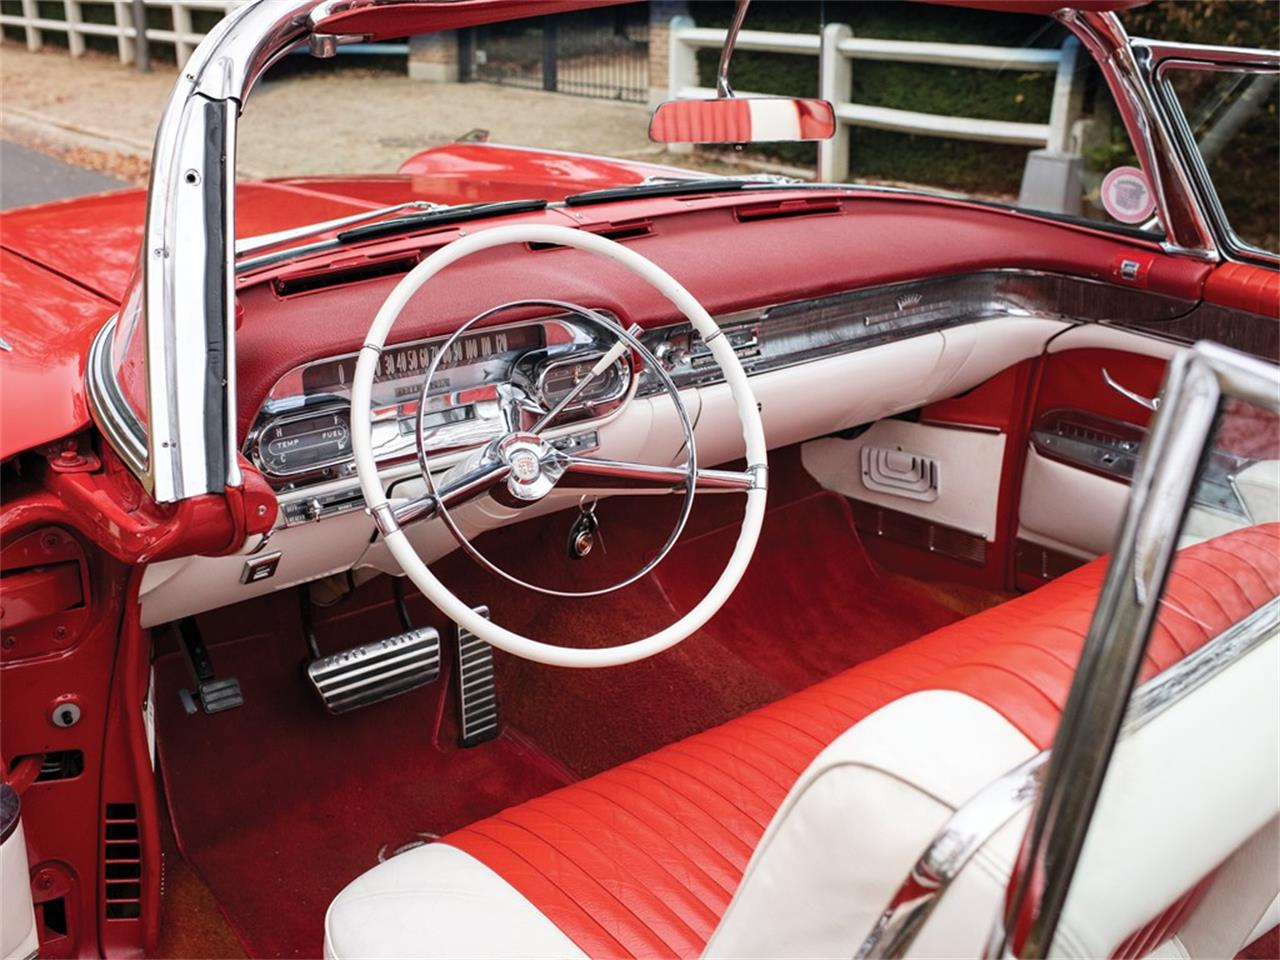 1958 Cadillac Eldorado Biarritz for sale in Essen, Other – photo 4